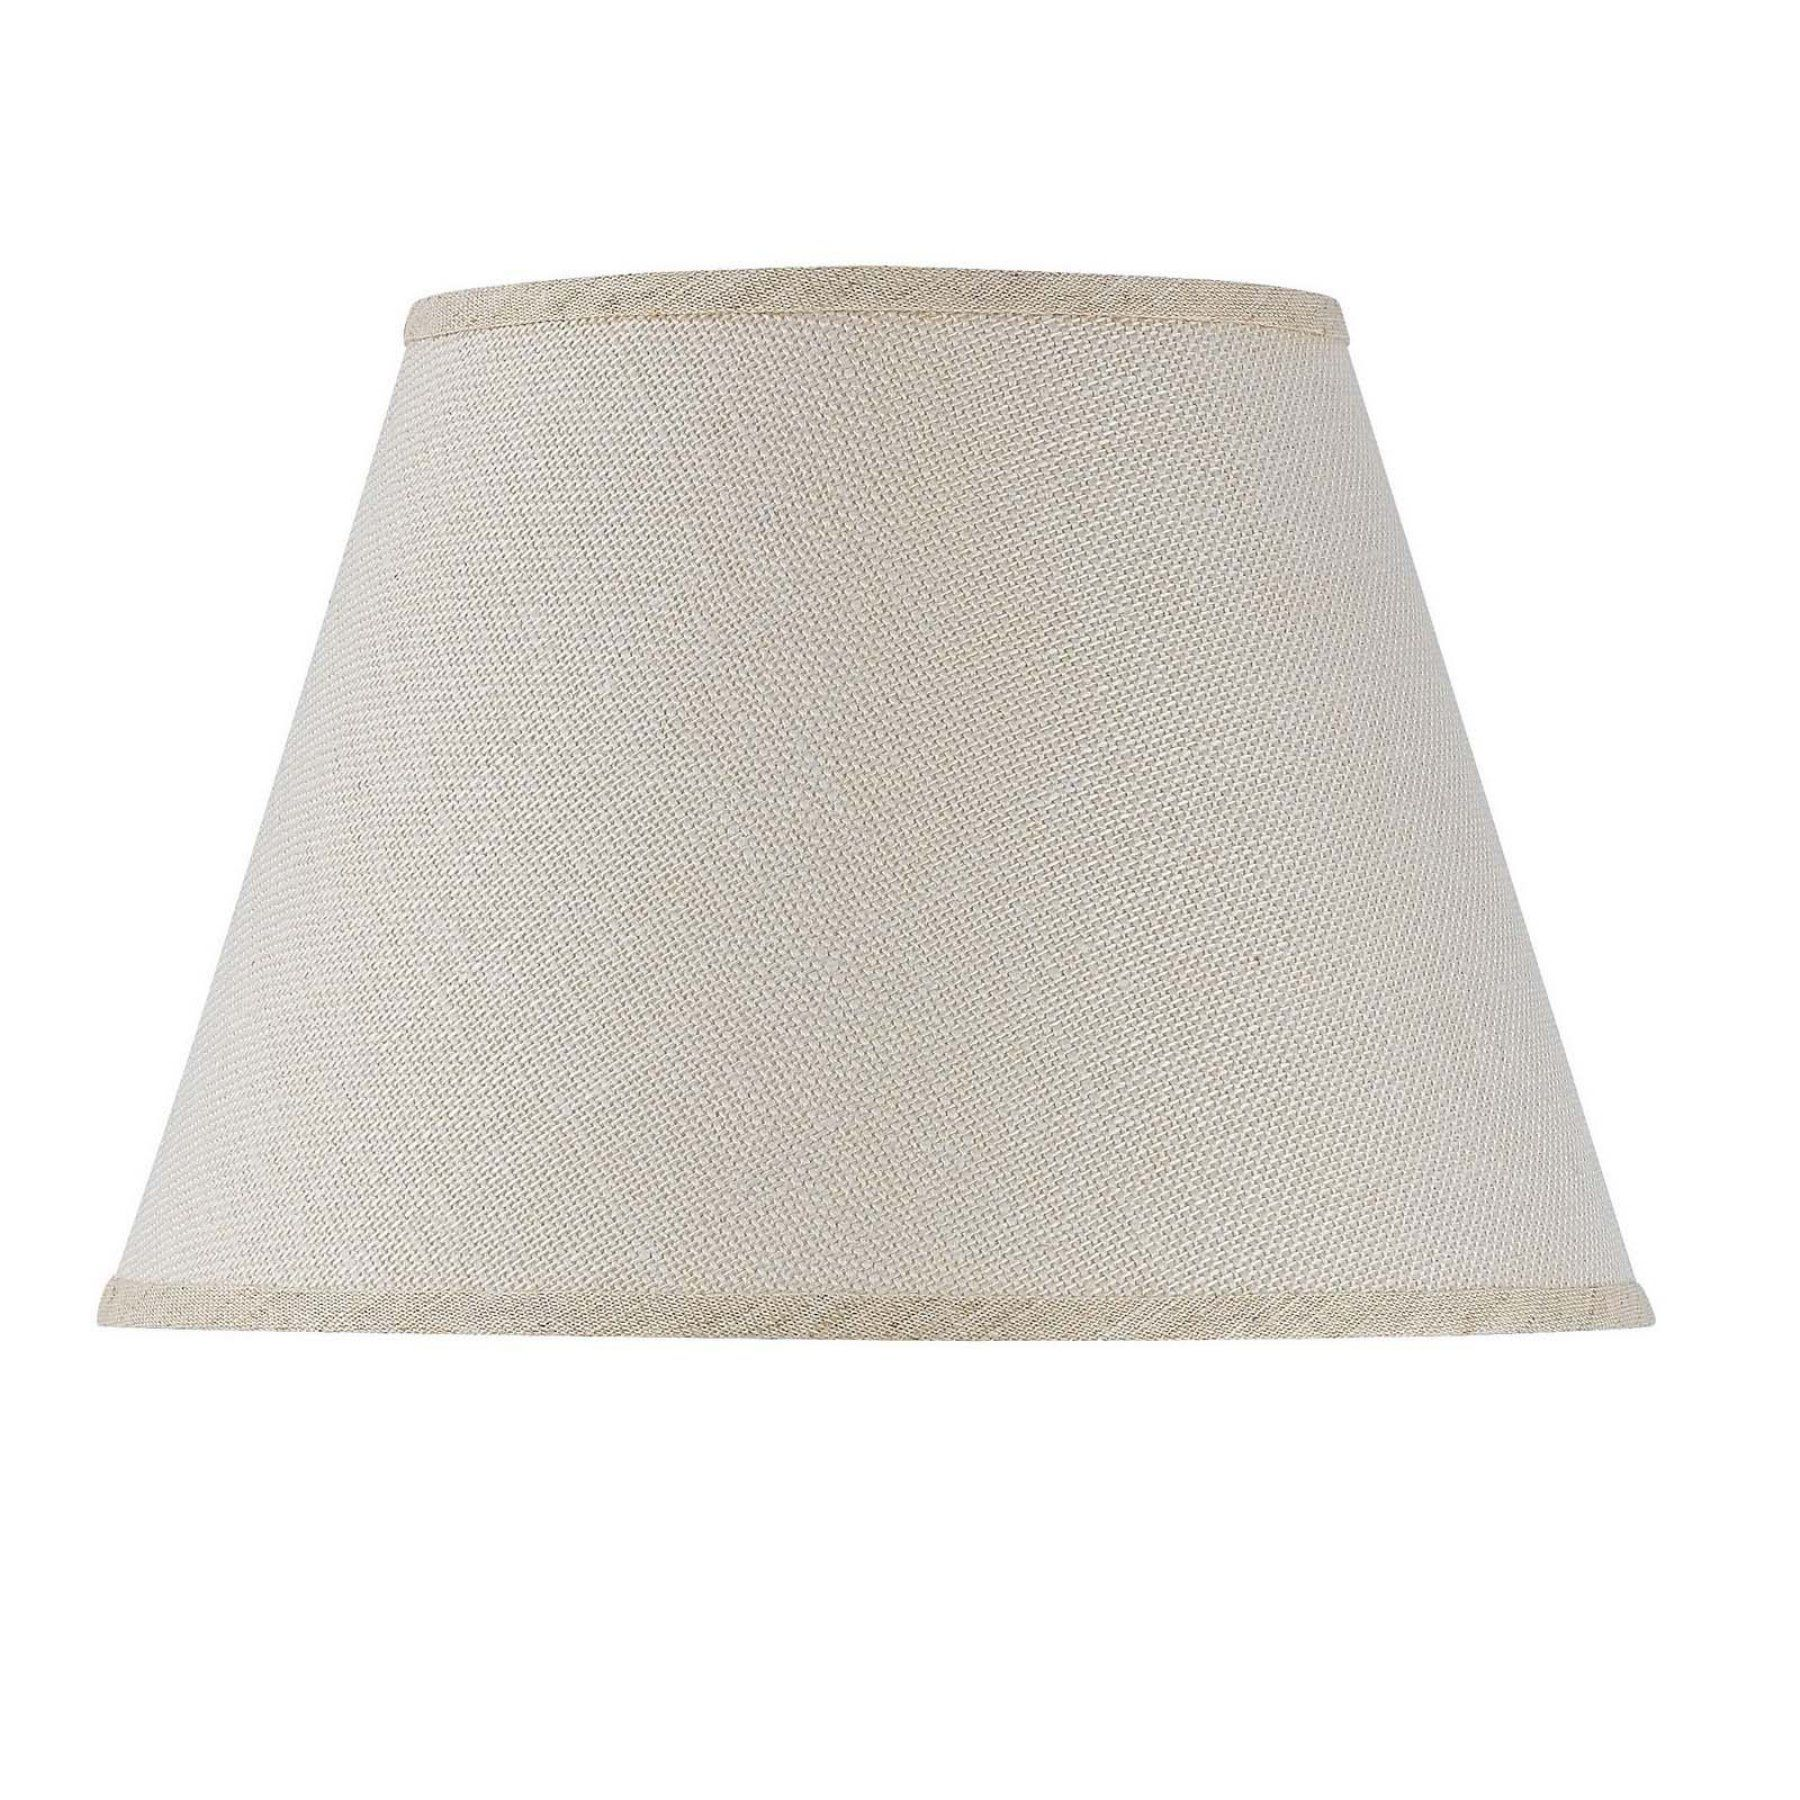 Cal Lighting Burlap Hardback Lamp Shade  Sh 1425